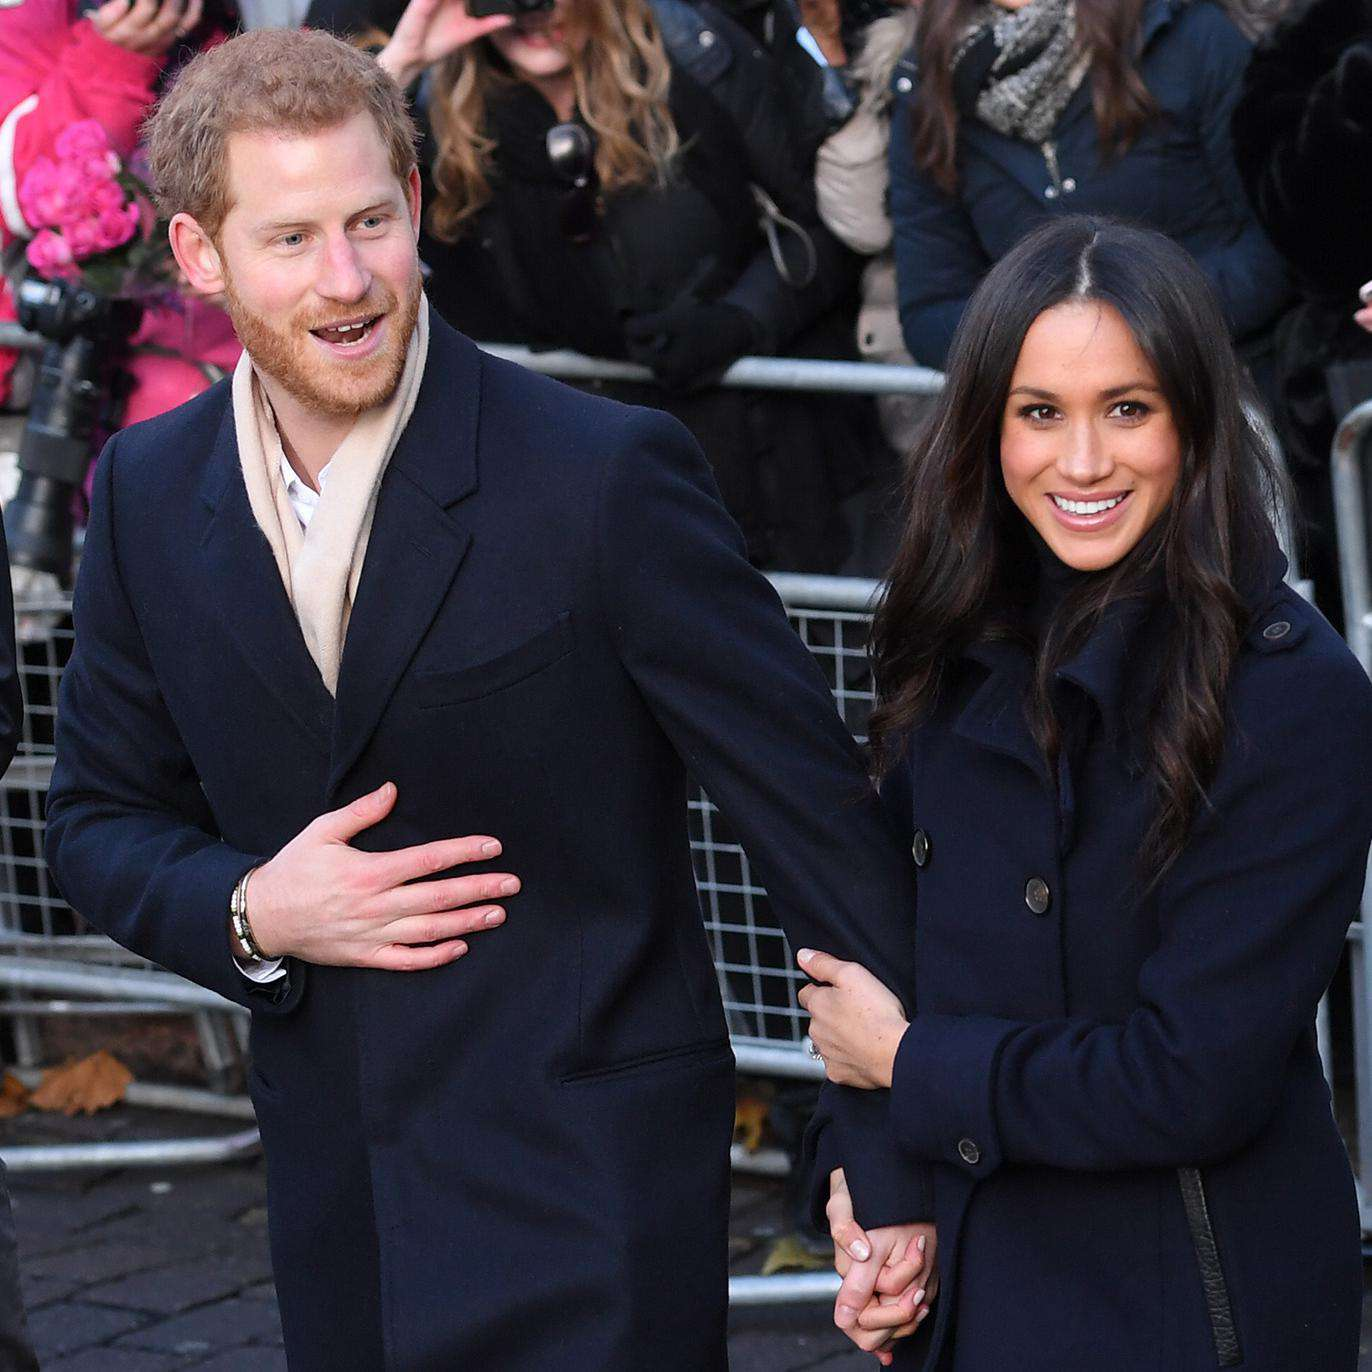 Celebrities Invited To Royal Wedding.Prince Harry And Meghan Markle S Royal Wedding Guest List 31